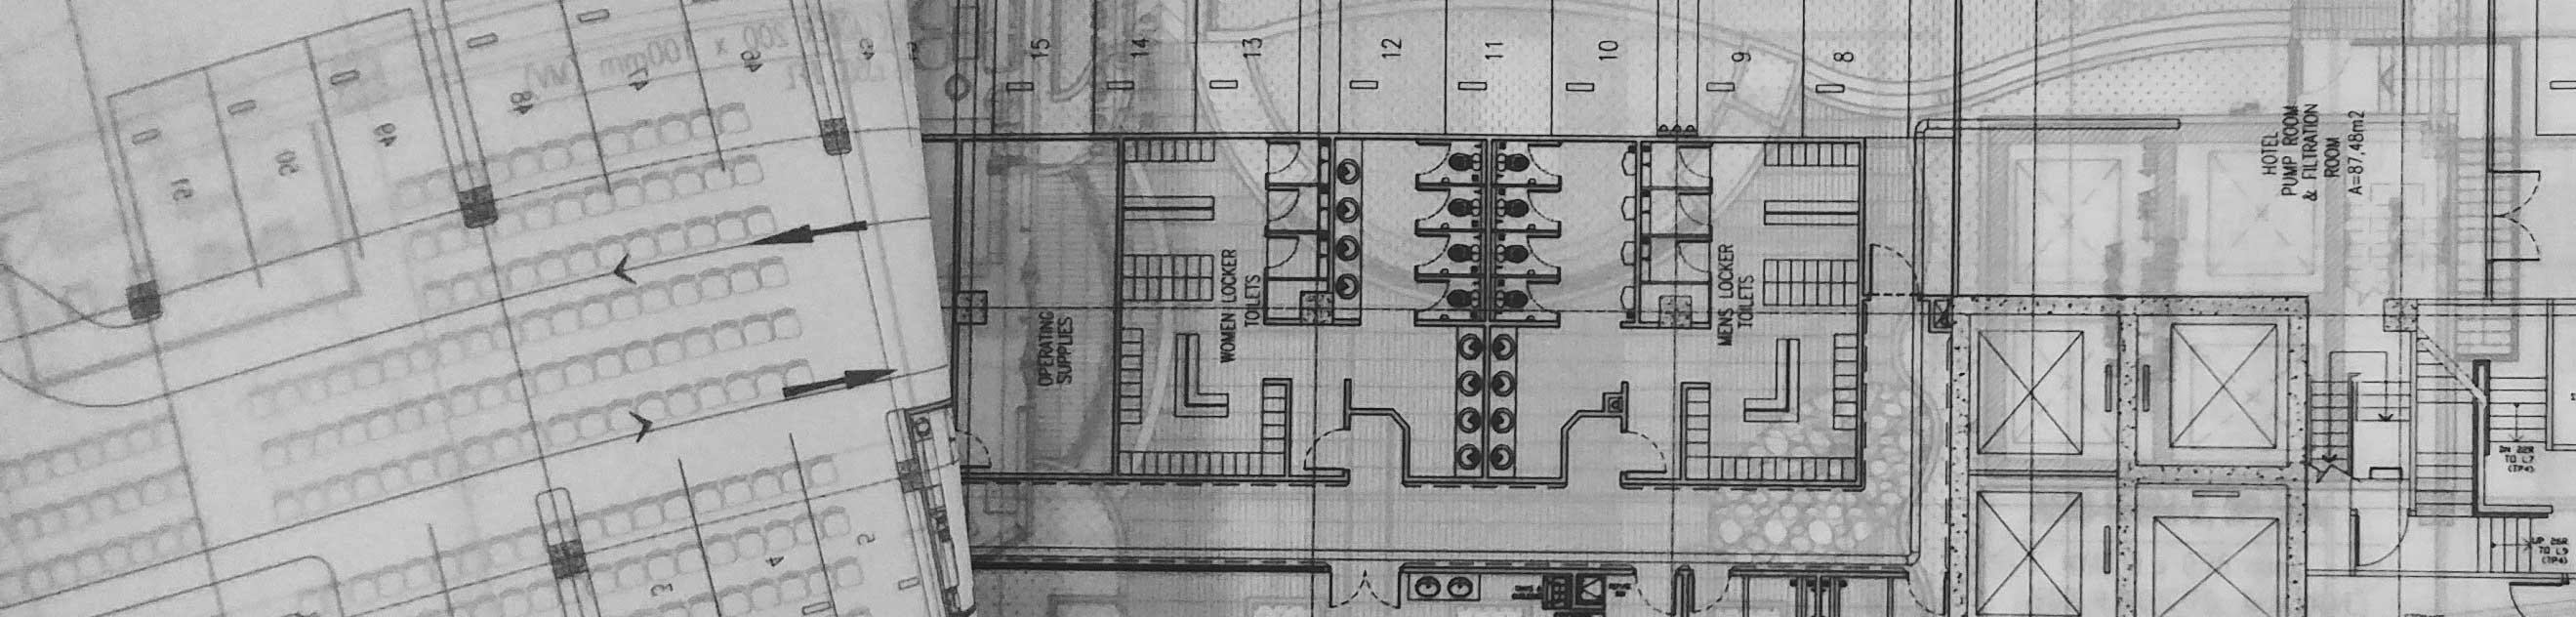 Plan room gpd construction blueprints malvernweather Choice Image